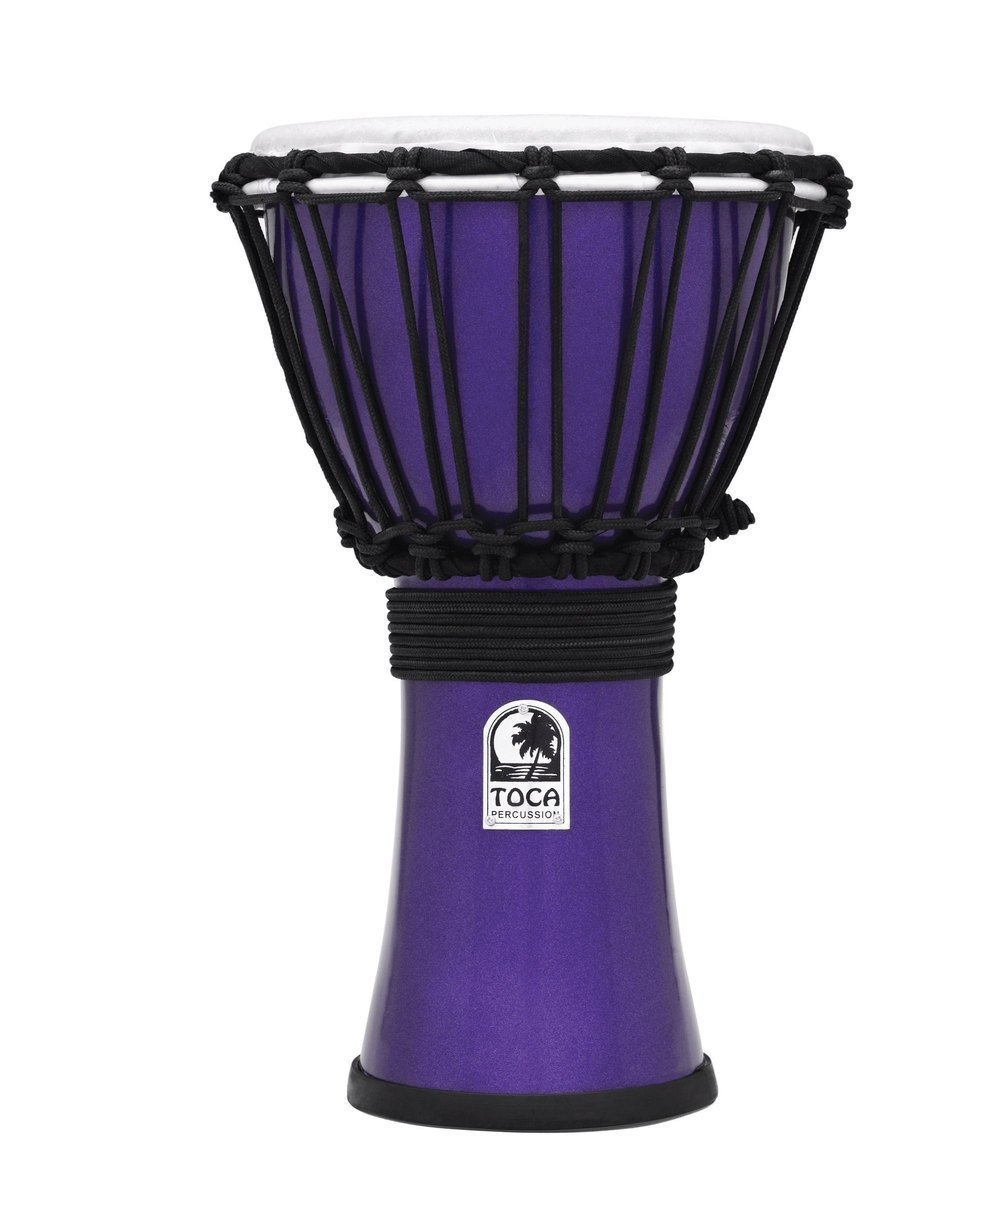 Toca TFCDJ-7MR Freestyle Colorsound 7-Inch Djembe - Metallic Red